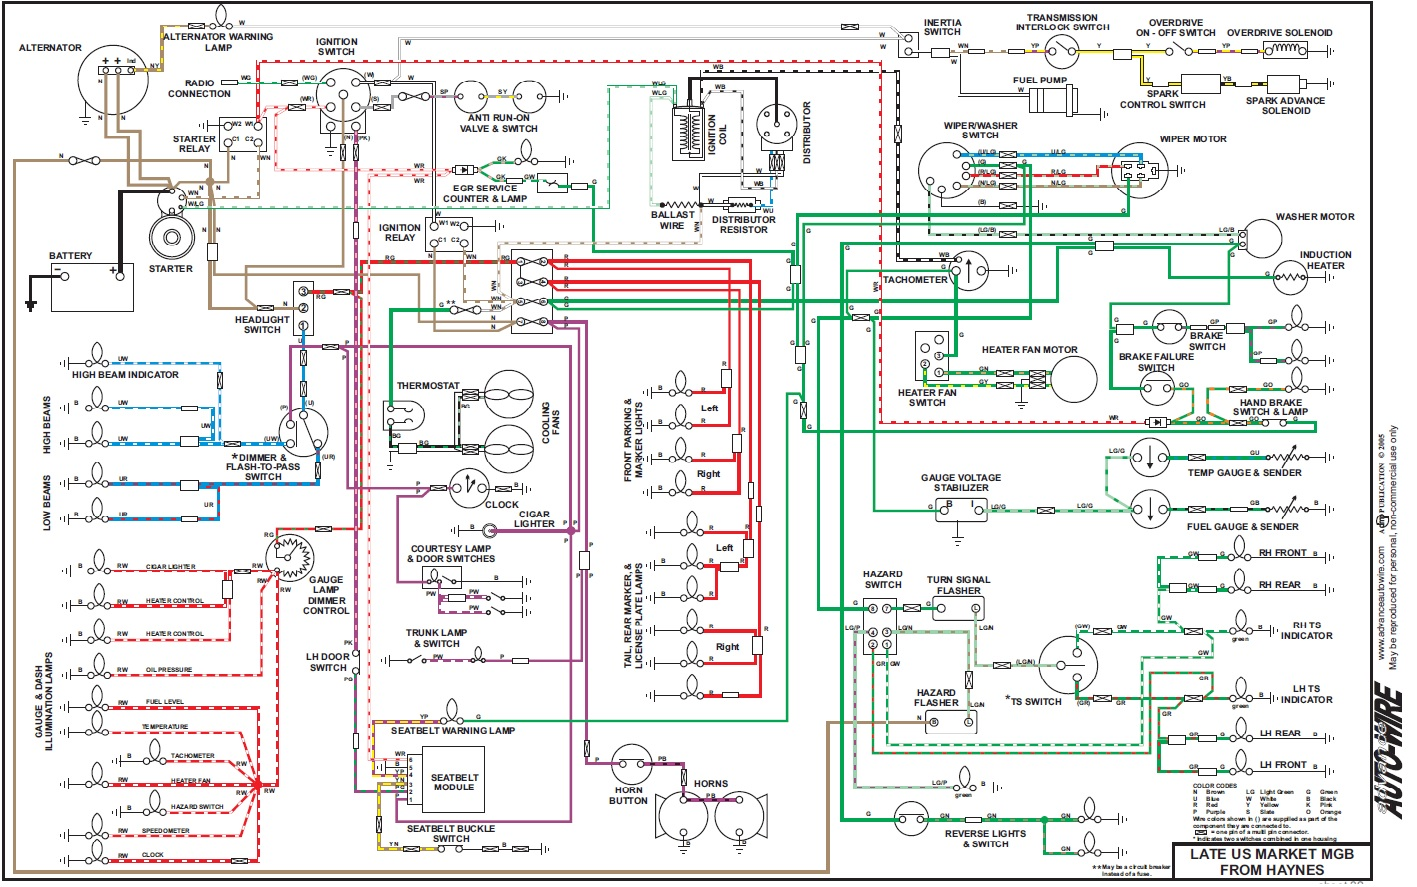 Cool Mg Tf 1500 Wiring Diagram Contemporary - Electrical and ...